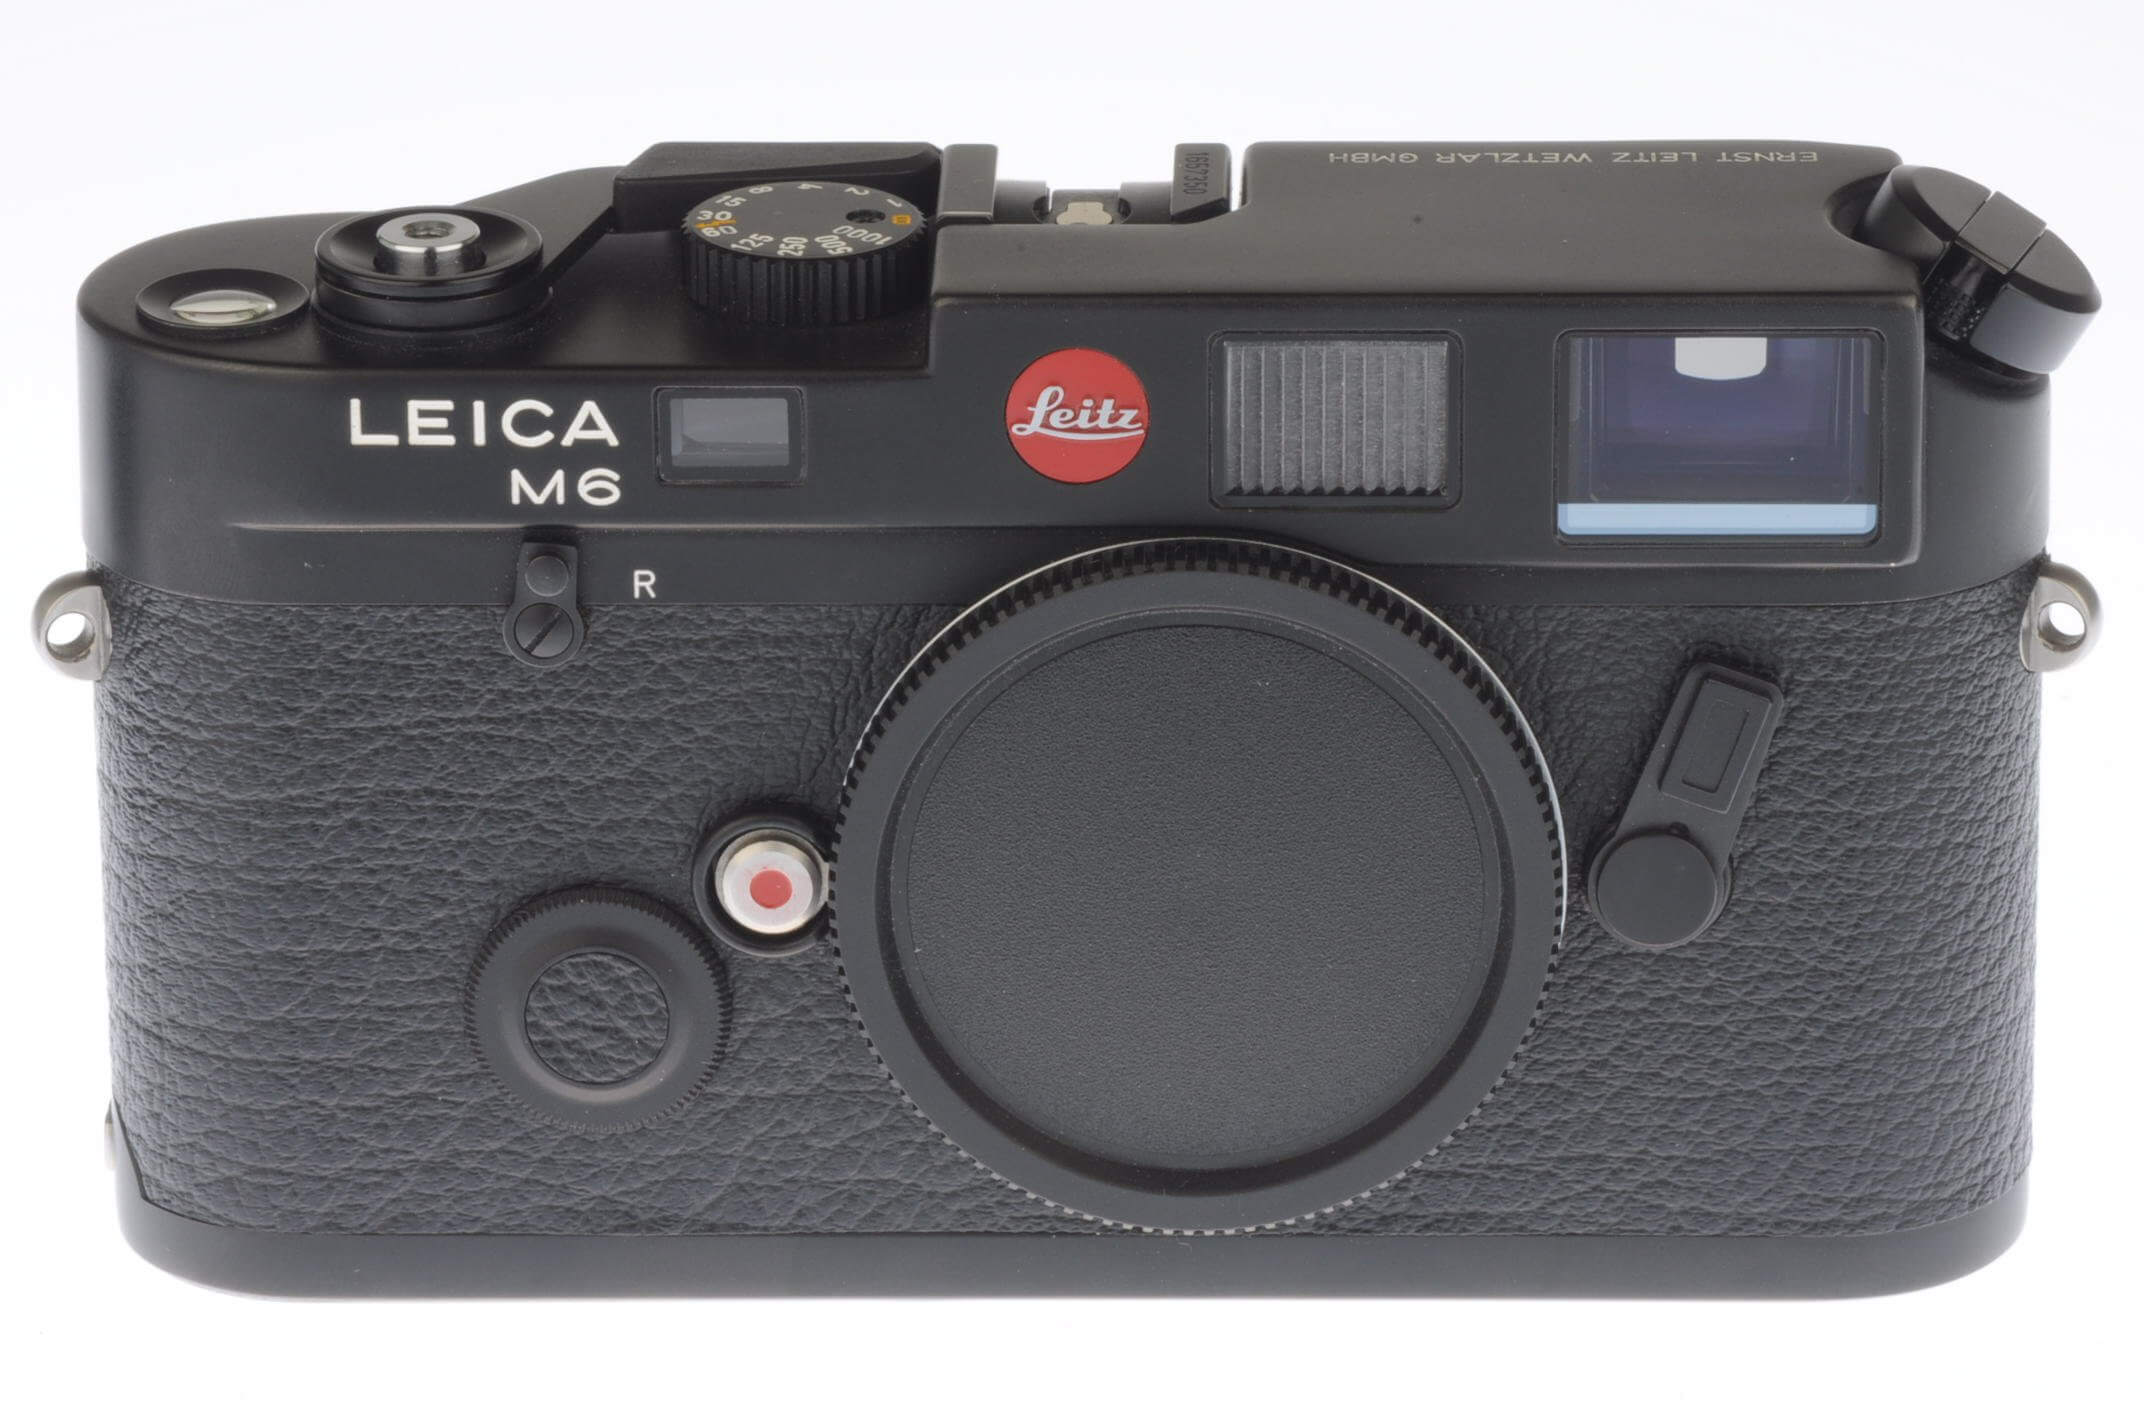 Leica M6 0.72 body, black, almost mint!